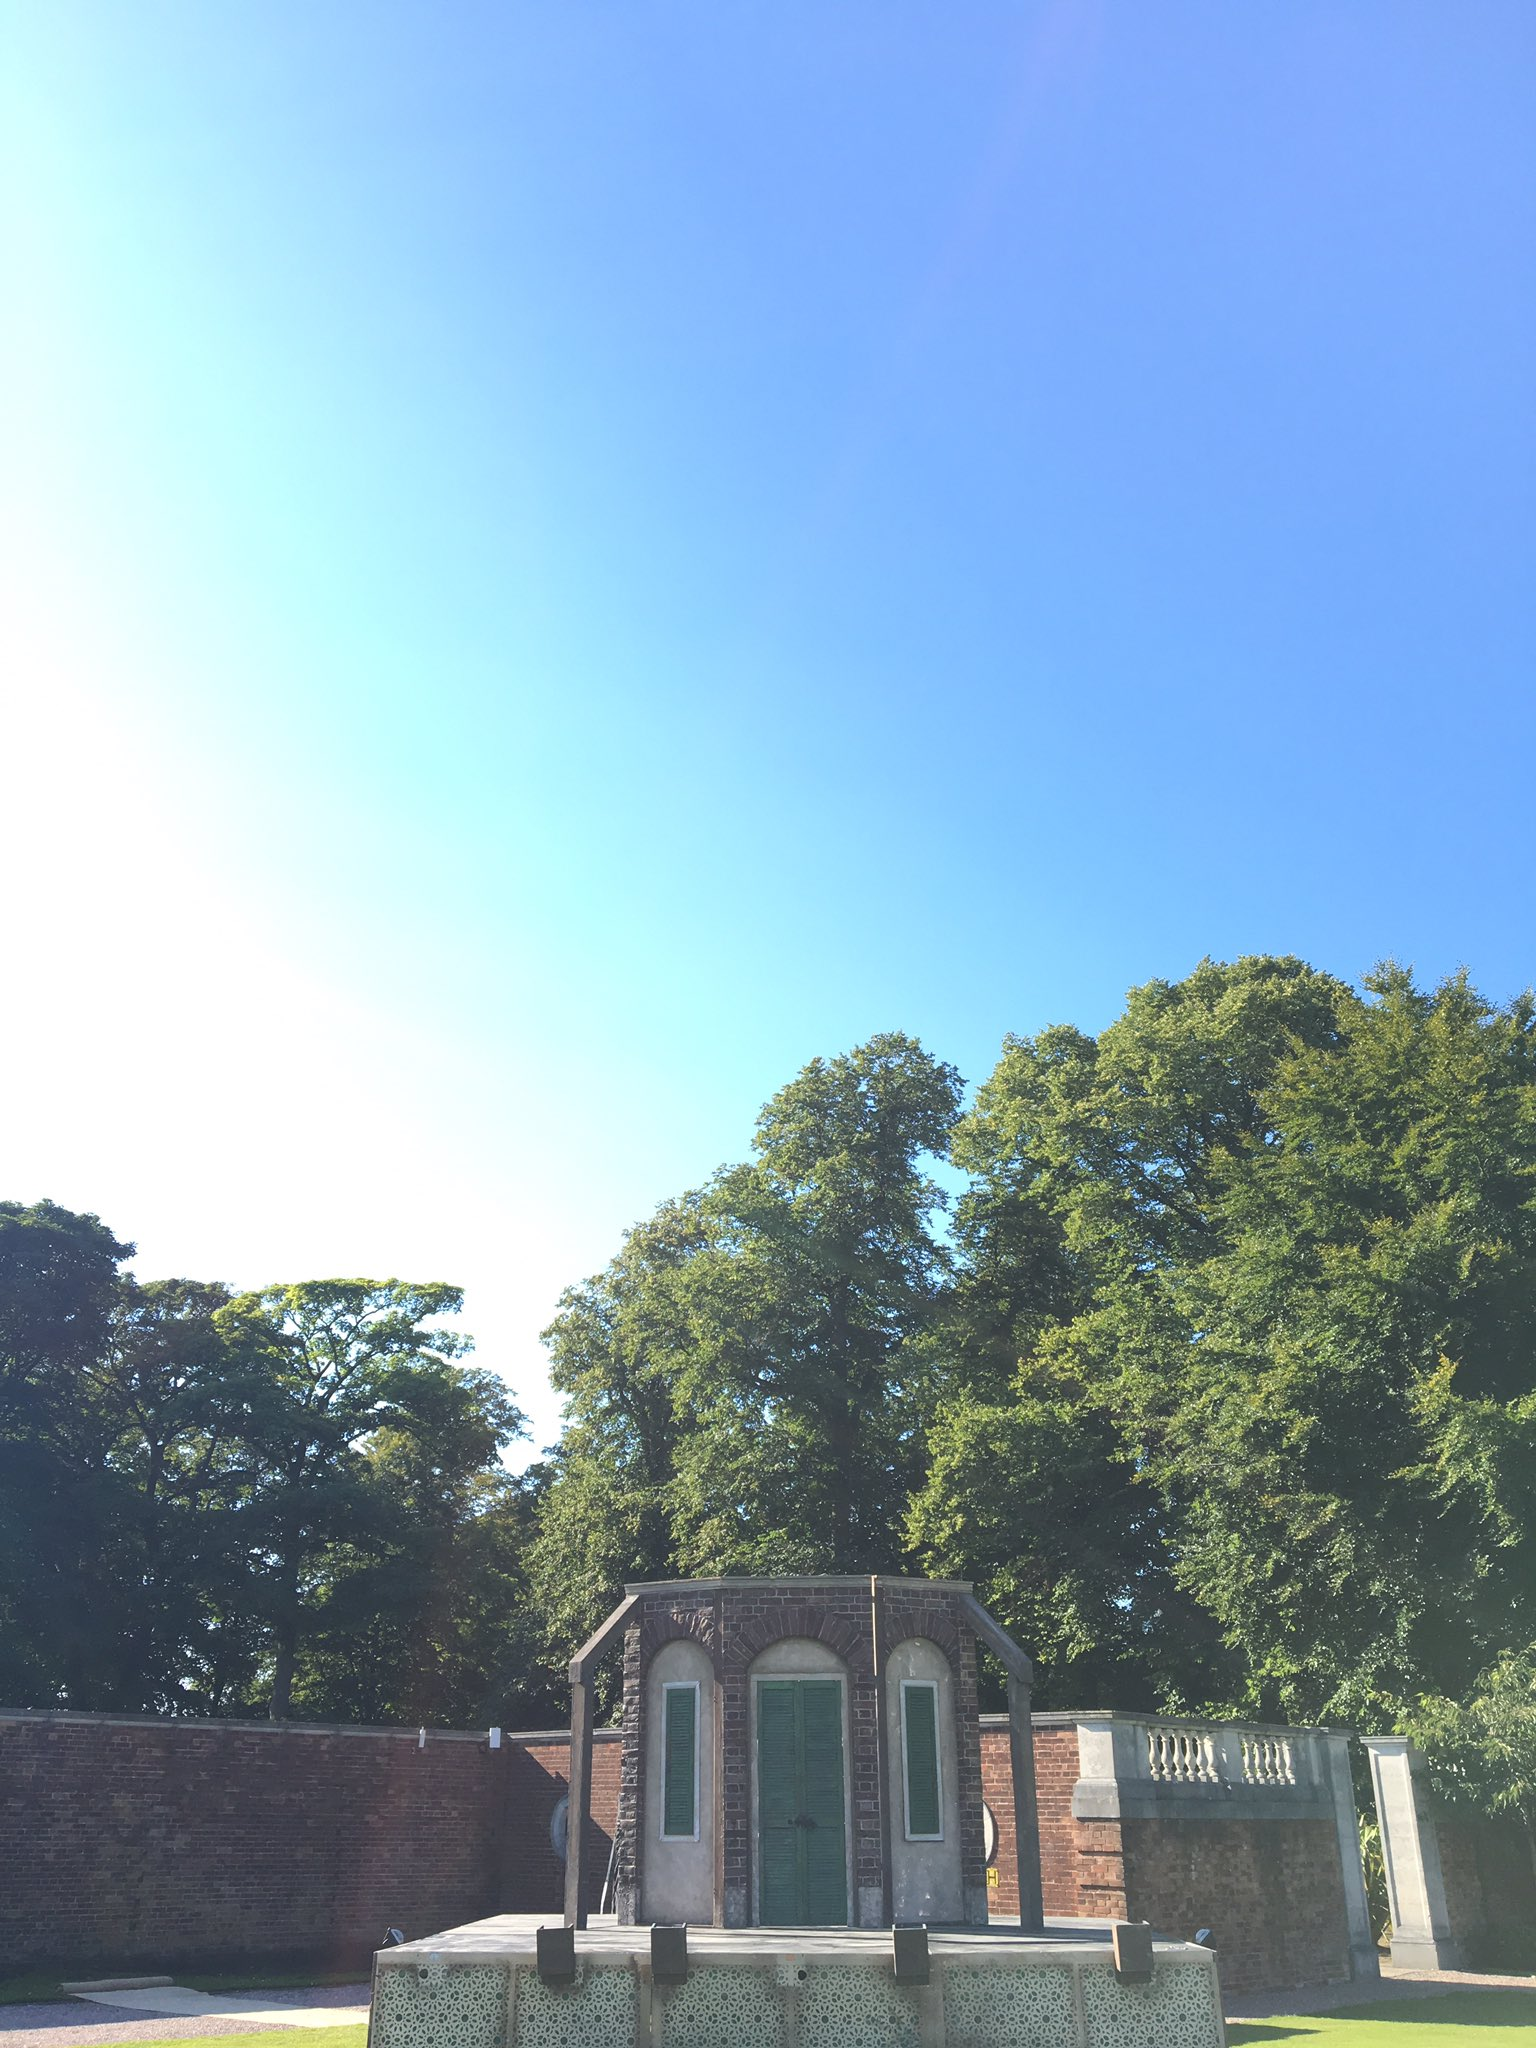 With blue sky like this if you haven't got a ticket for #TLCMComedy at @KnowsleyHall tonight you need to ask yourself some serious questions https://t.co/dCs6sukeak